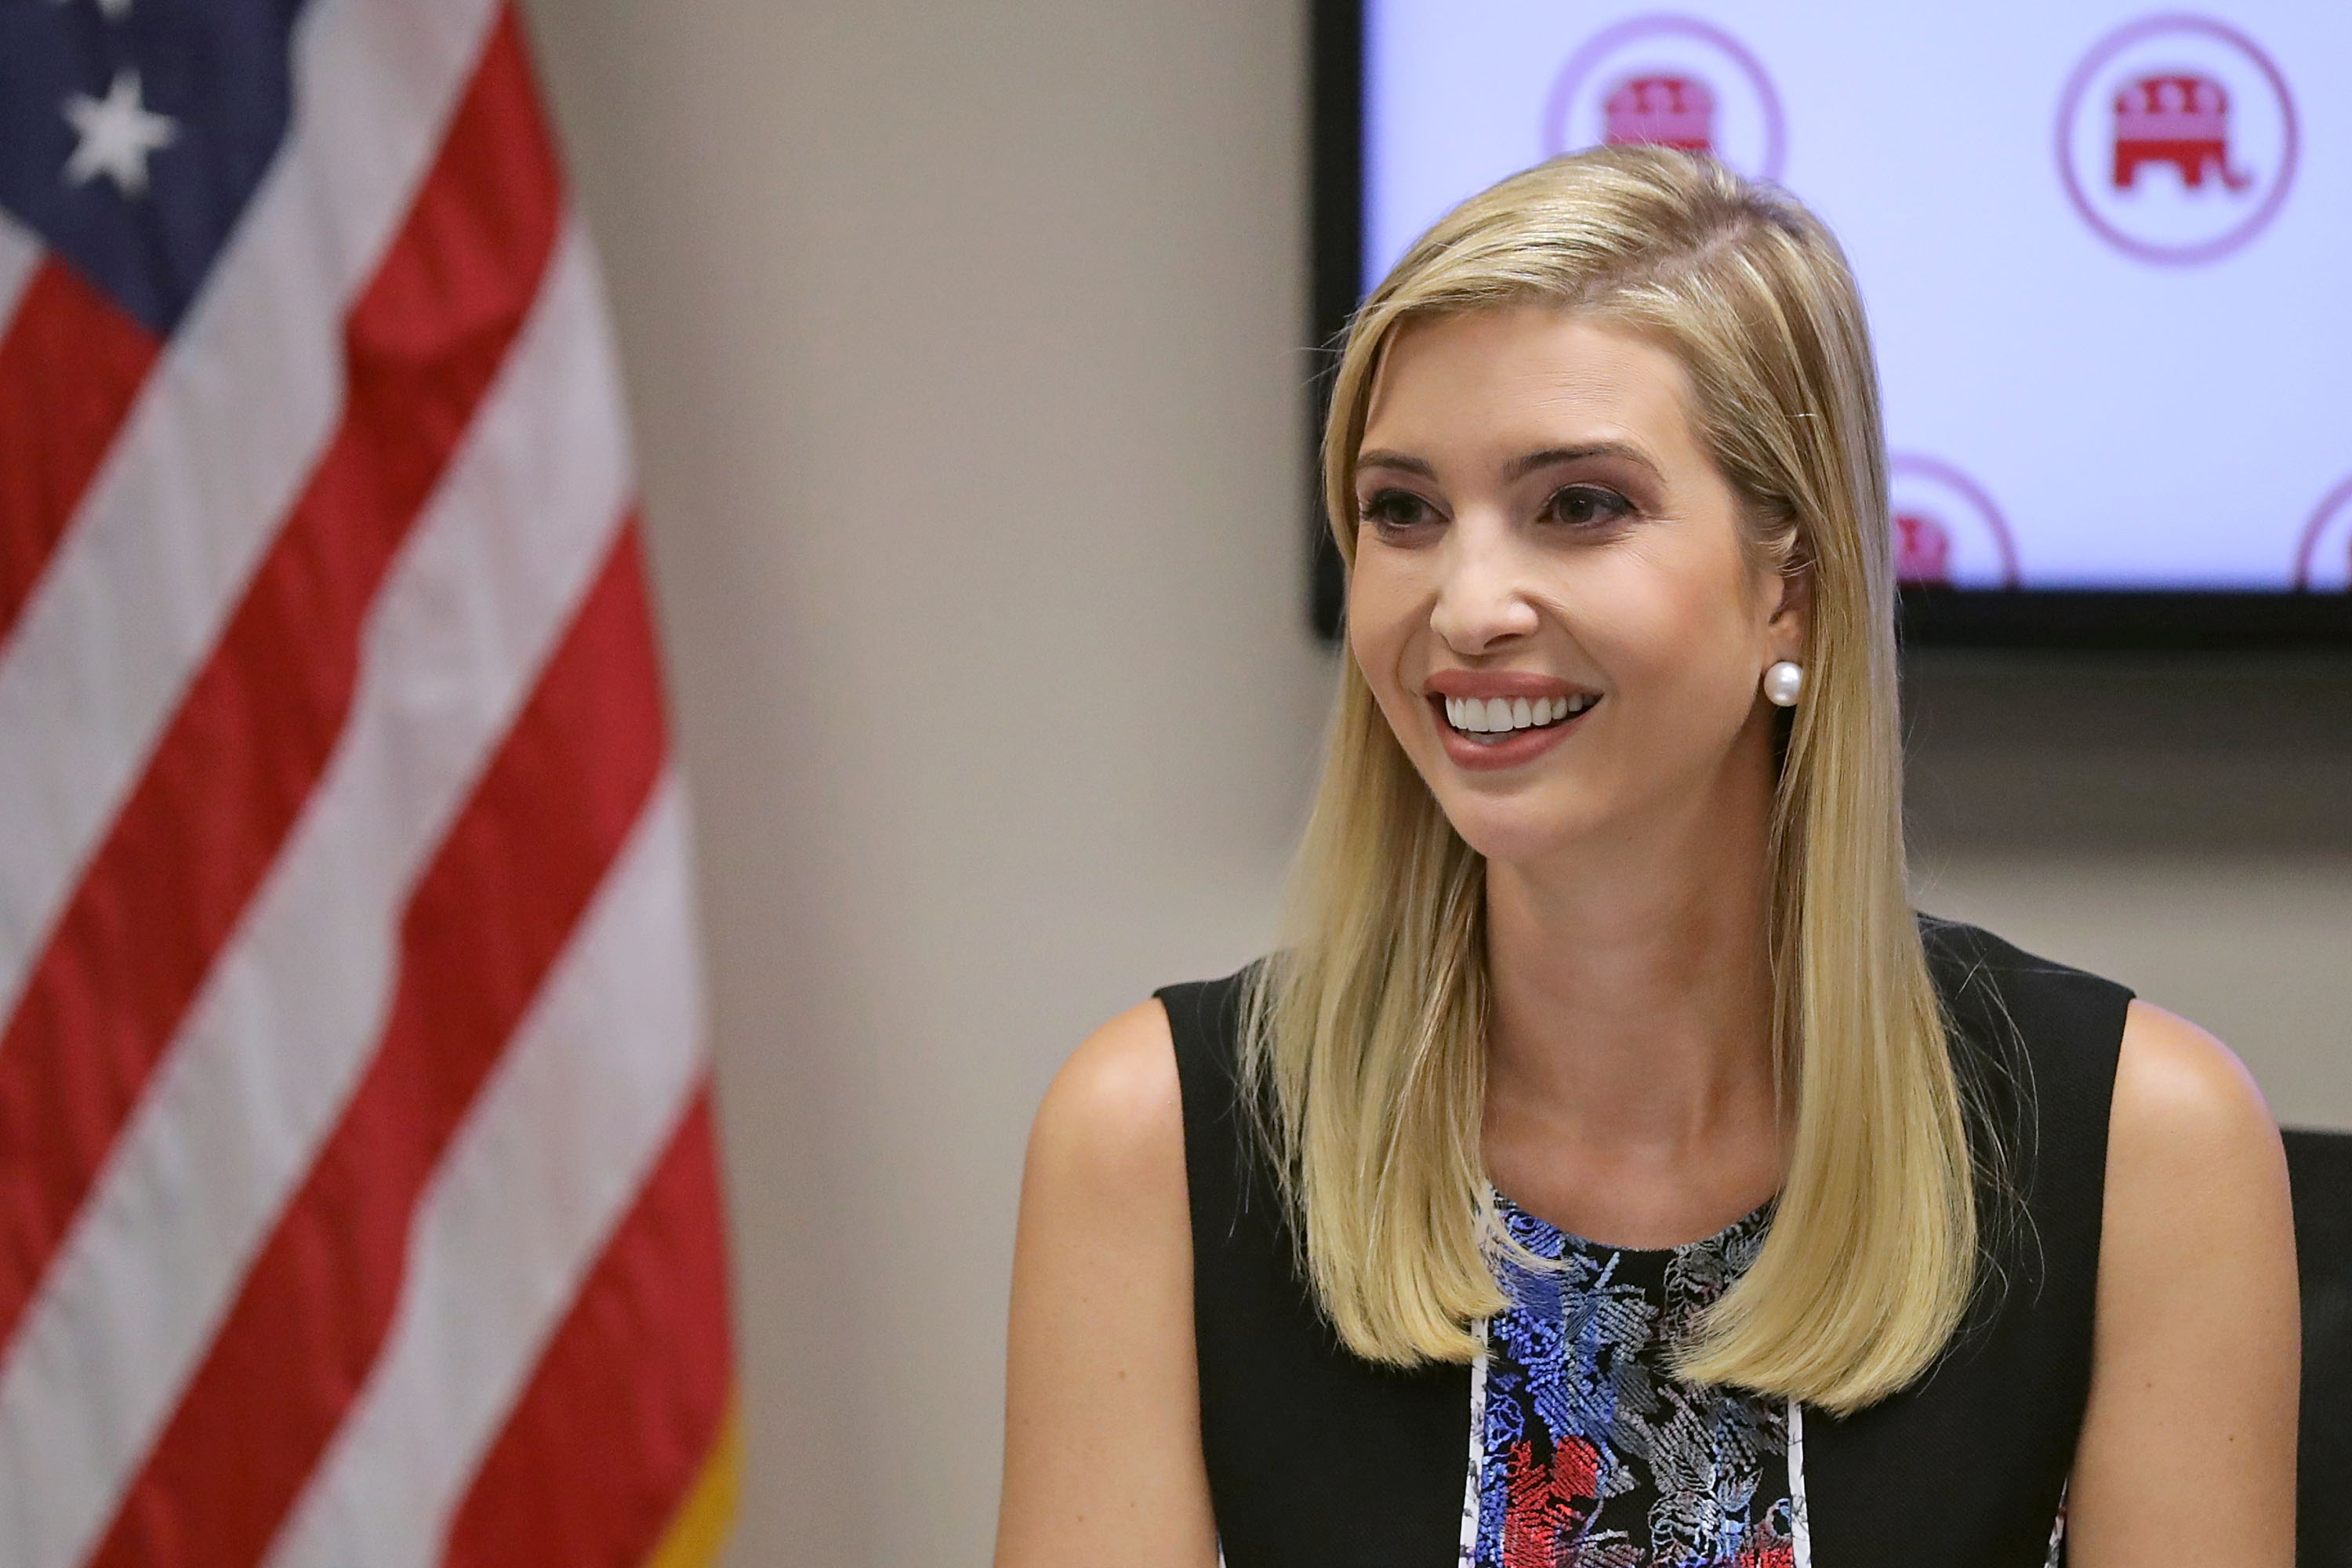 Ivanka Trump, daughter of Republican presidential nominee Donald Trump, visits with women GOP members of Congress at the Republican National Committee headquarters on Capitol Hill on Sept. 20, 2016 in Washington, DC.